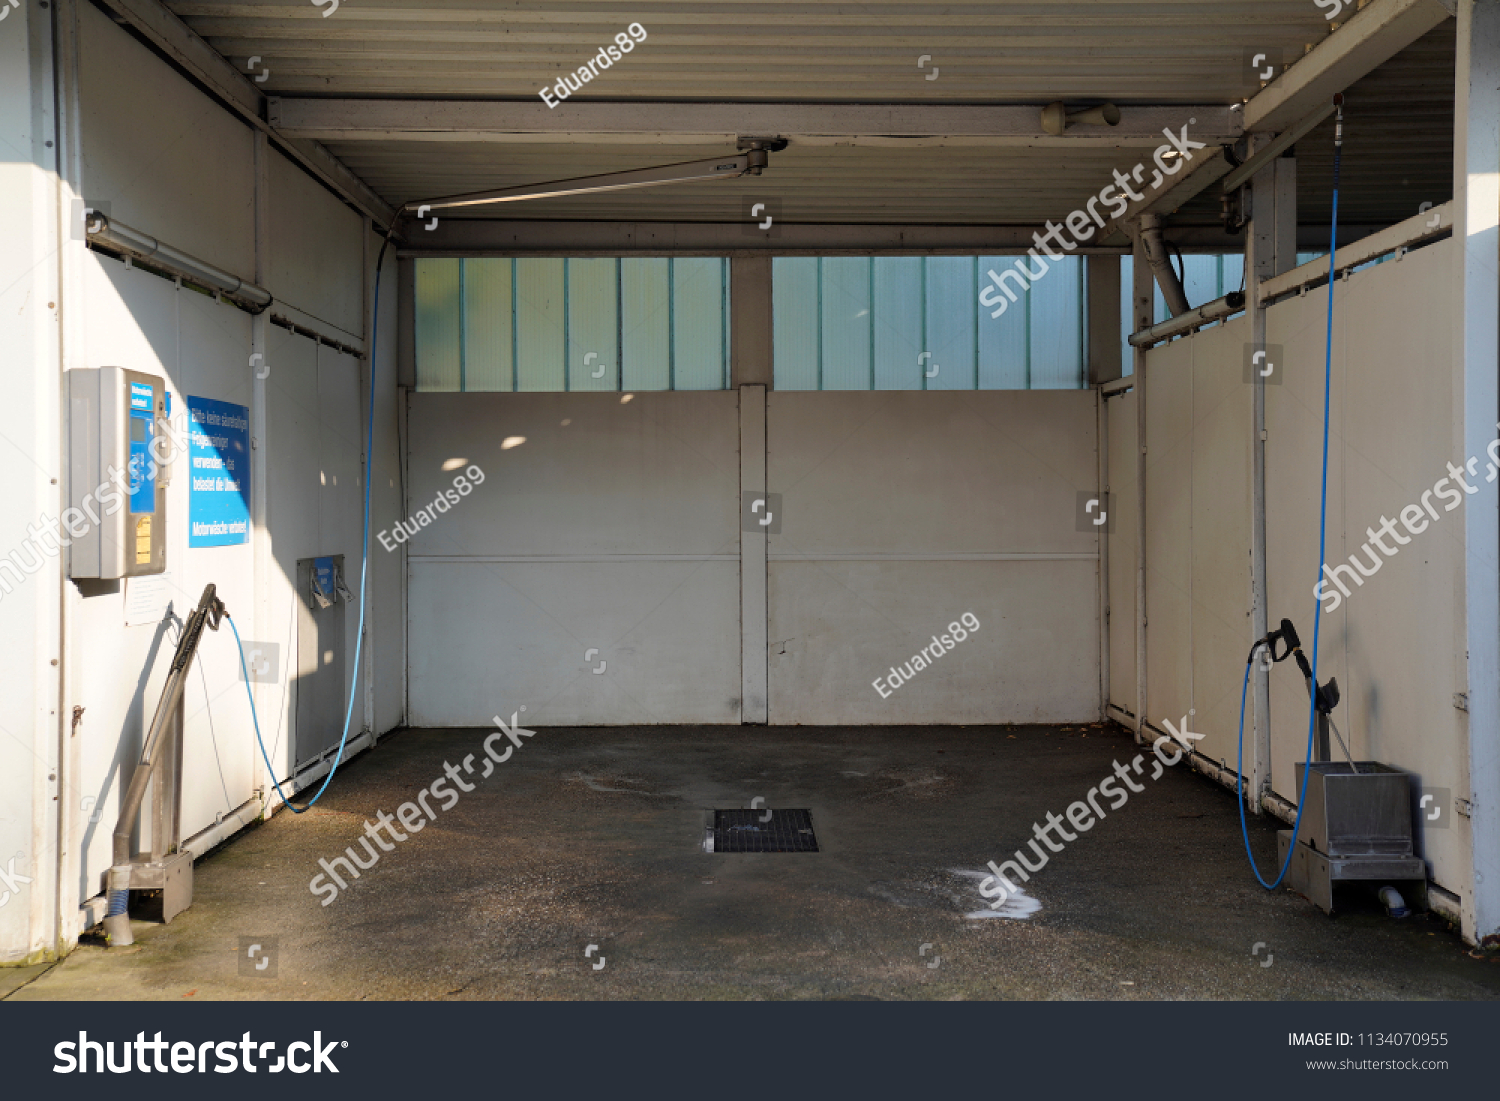 Empty Self Service Car Washing Booth Stock Photo (Edit Now) 1134070955